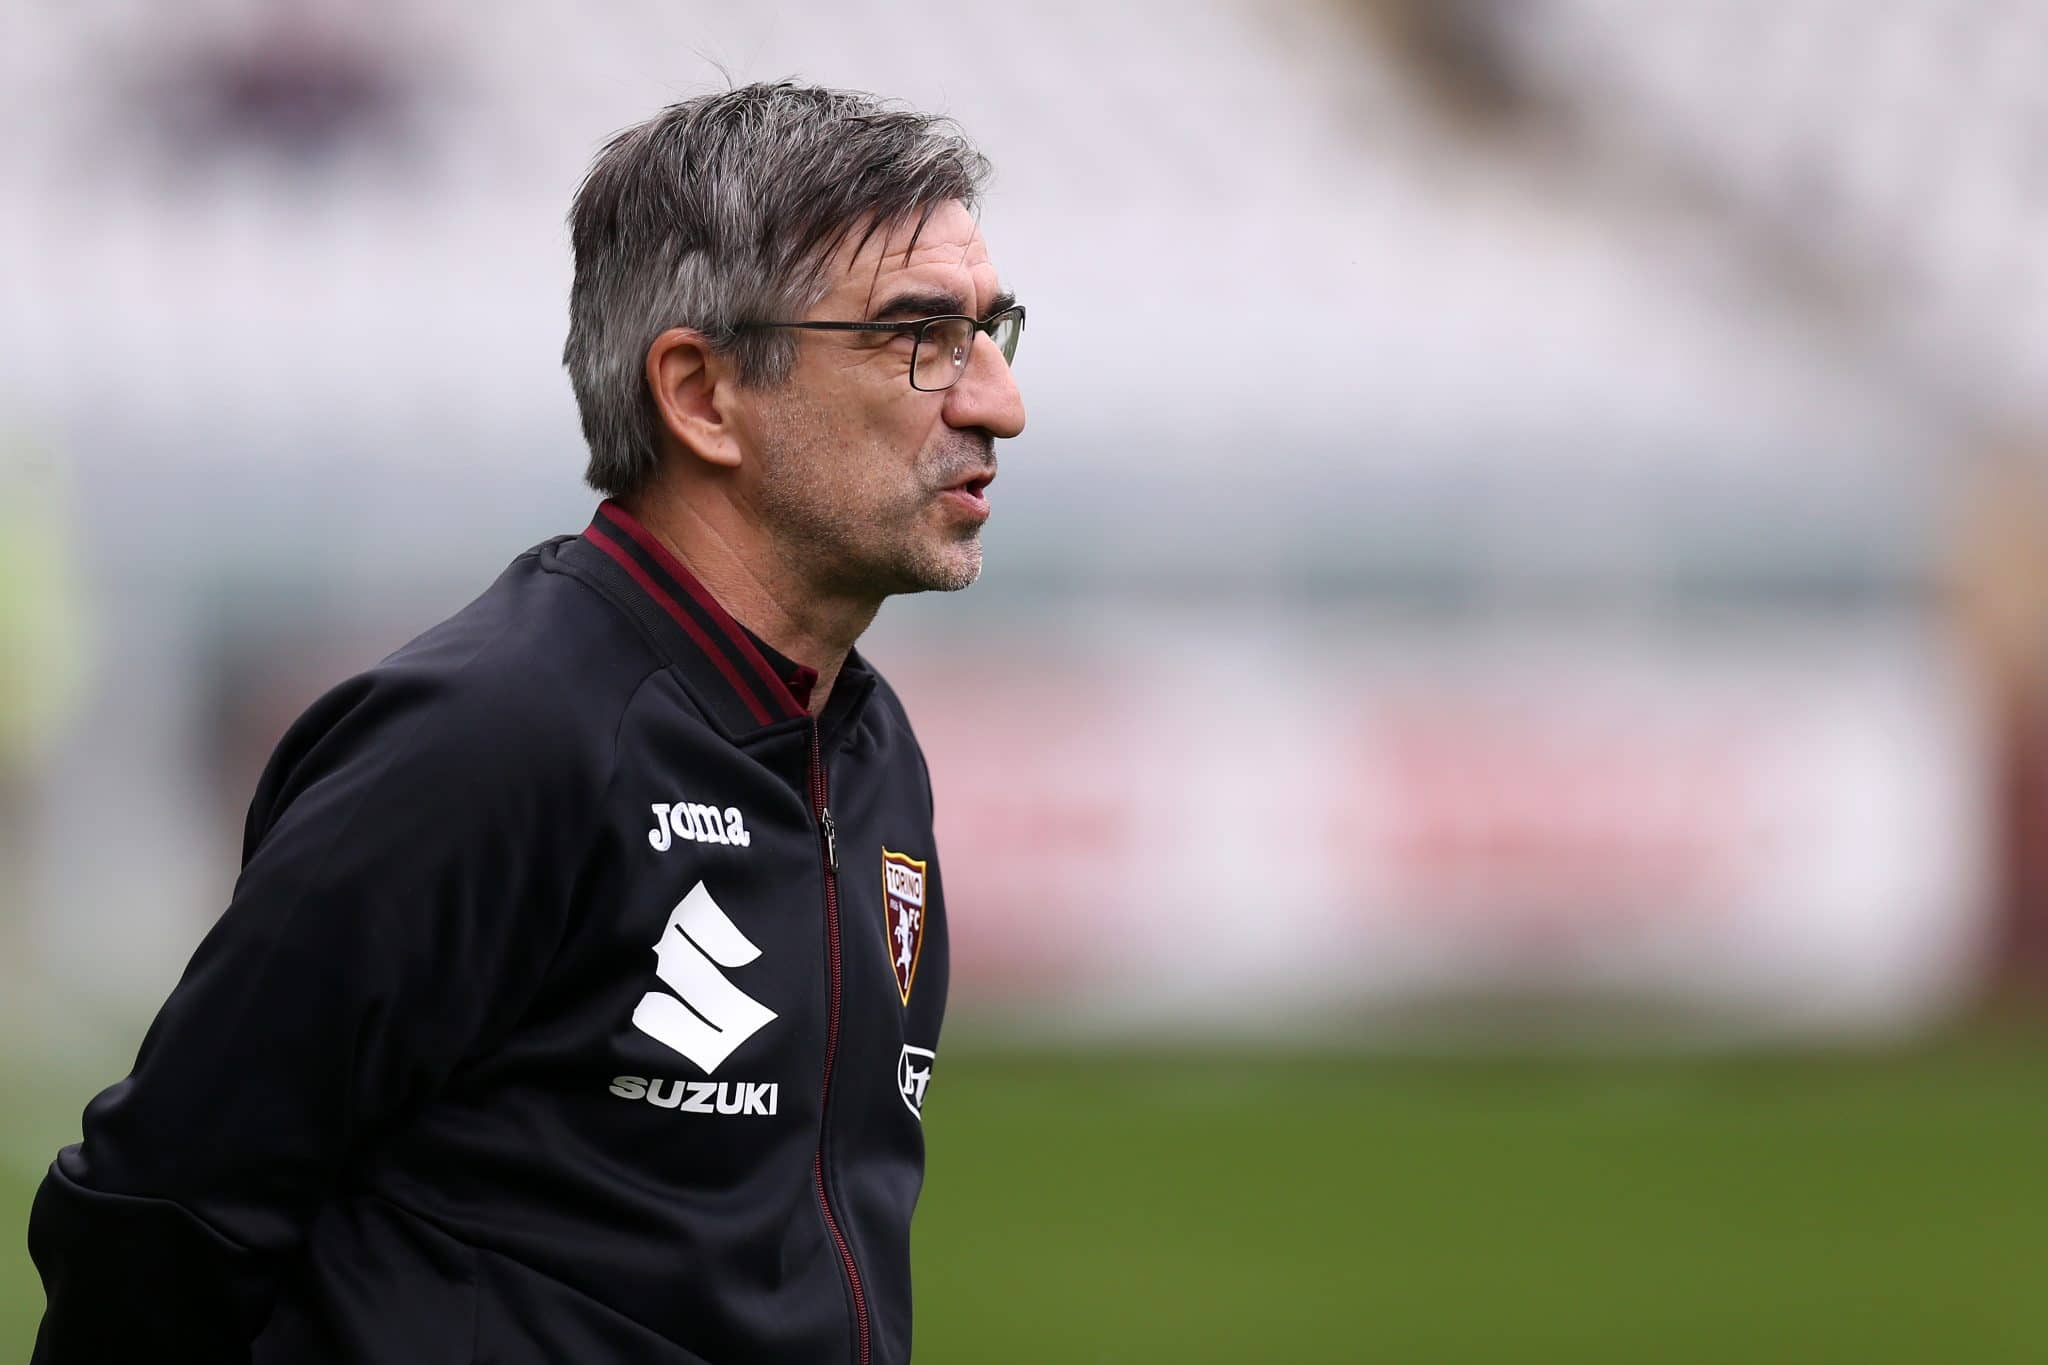 STADIO OLIMPICO, TORINO, ITALY - 2021/10/02: Ivan Juric, head coach of Torino Fc , looks on during the Serie A match between Torino Fc and Juventus Fc. Juventus fc wins 1-0 over Torino Fc. (Photo by Marco Canoniero/LightRocket via Getty Images)